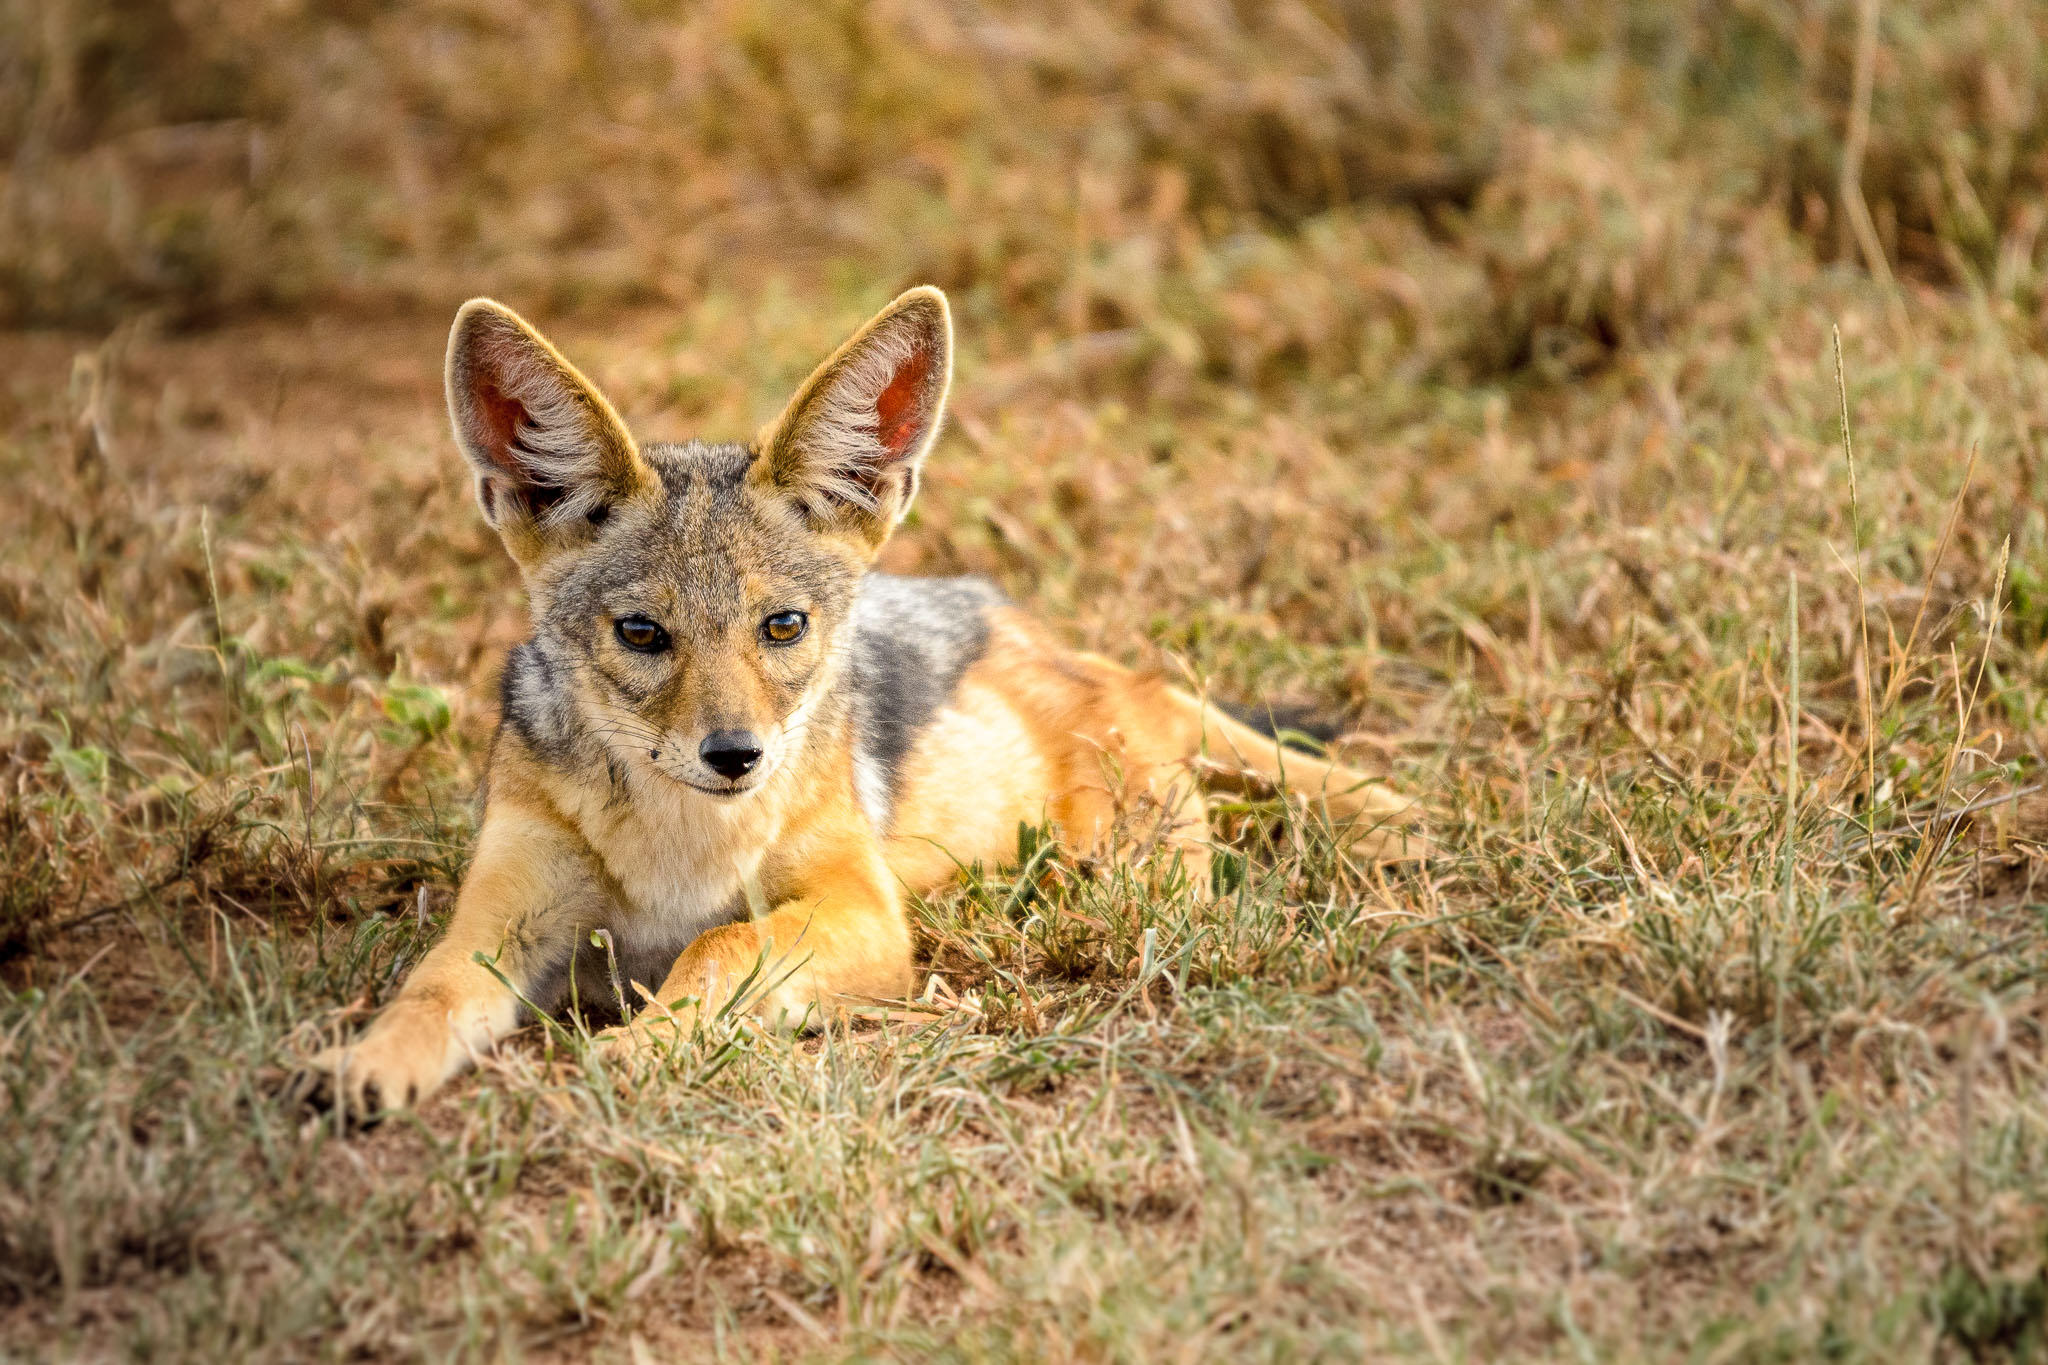 What is the young of a Jackal called? Does it matter, he is just a cute looking puppy. Of course a photo doesn't tell the complete story but just before this he was playing with his brothers just like any domestic puppy would.